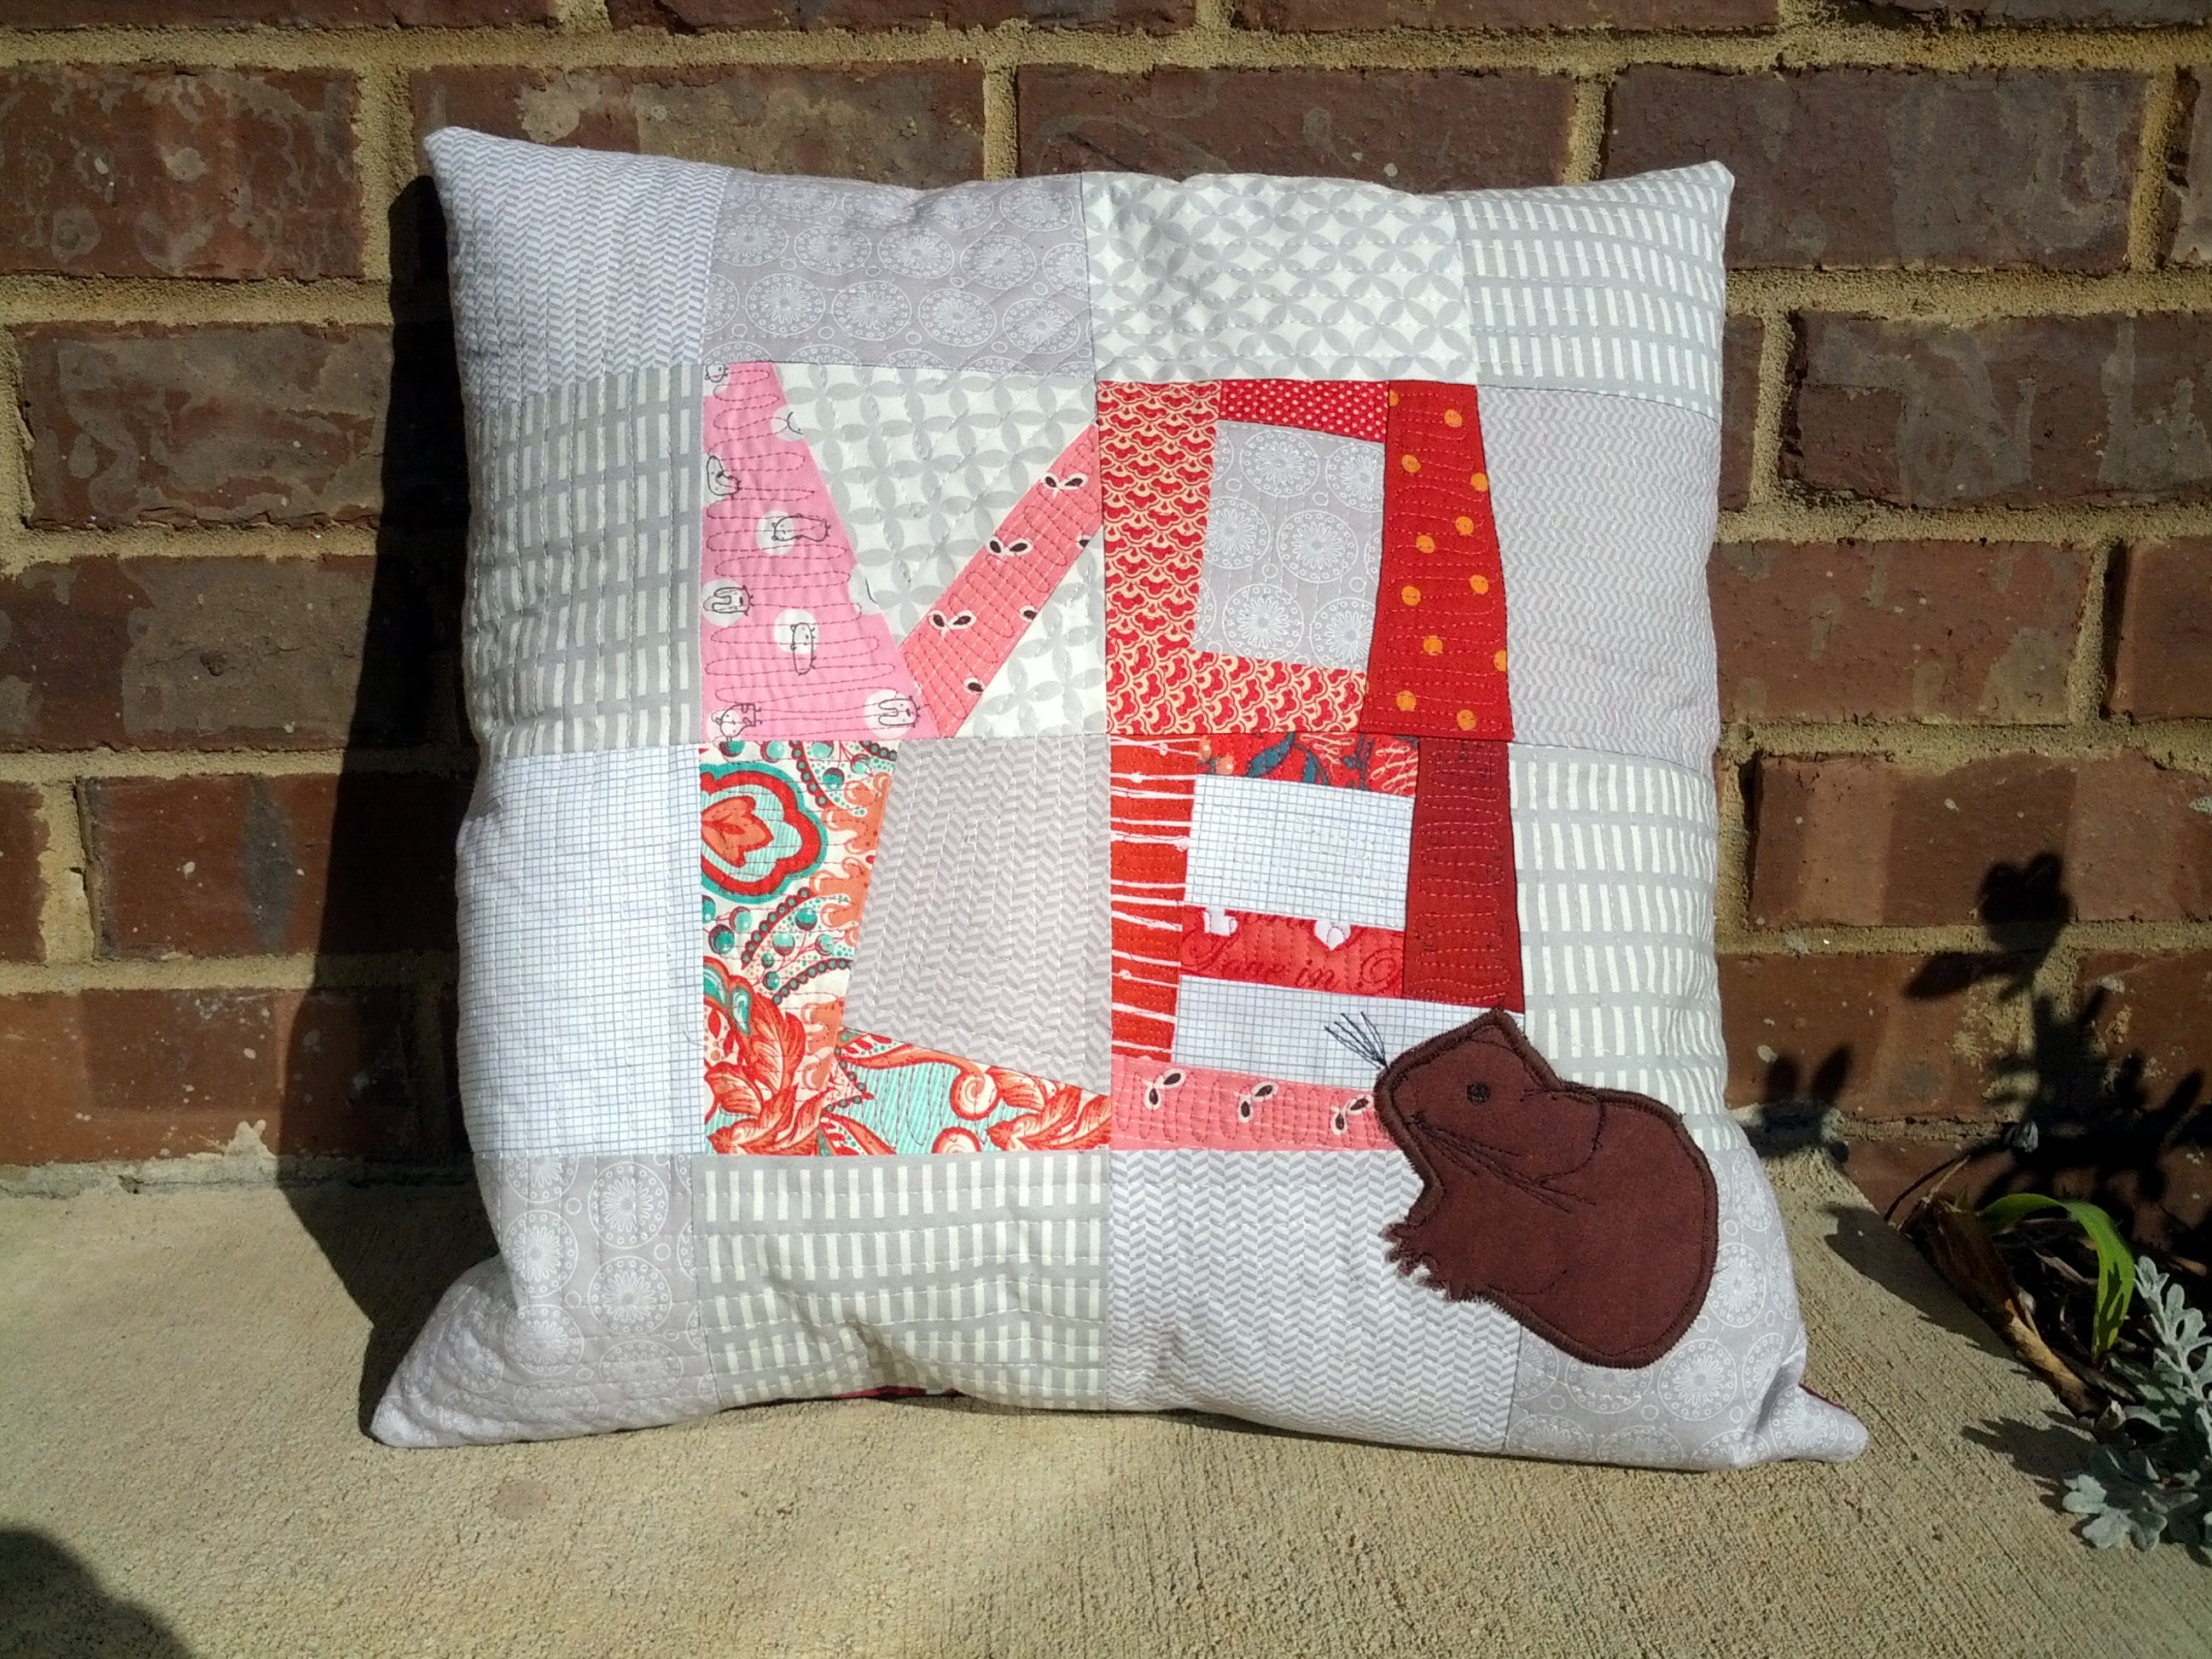 Volentine's day pillow